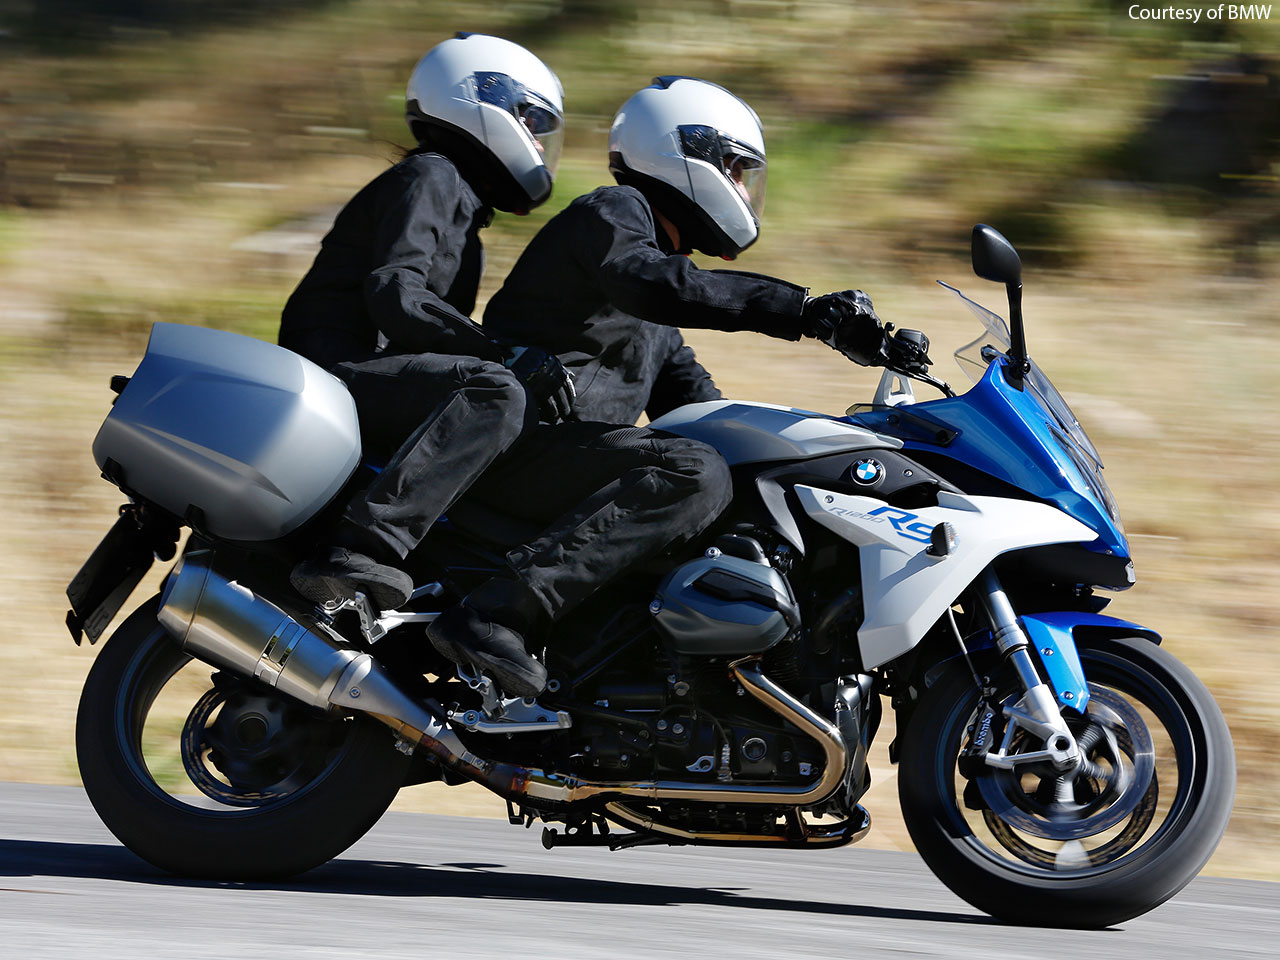 BMW R1200RS 2015 images #9254